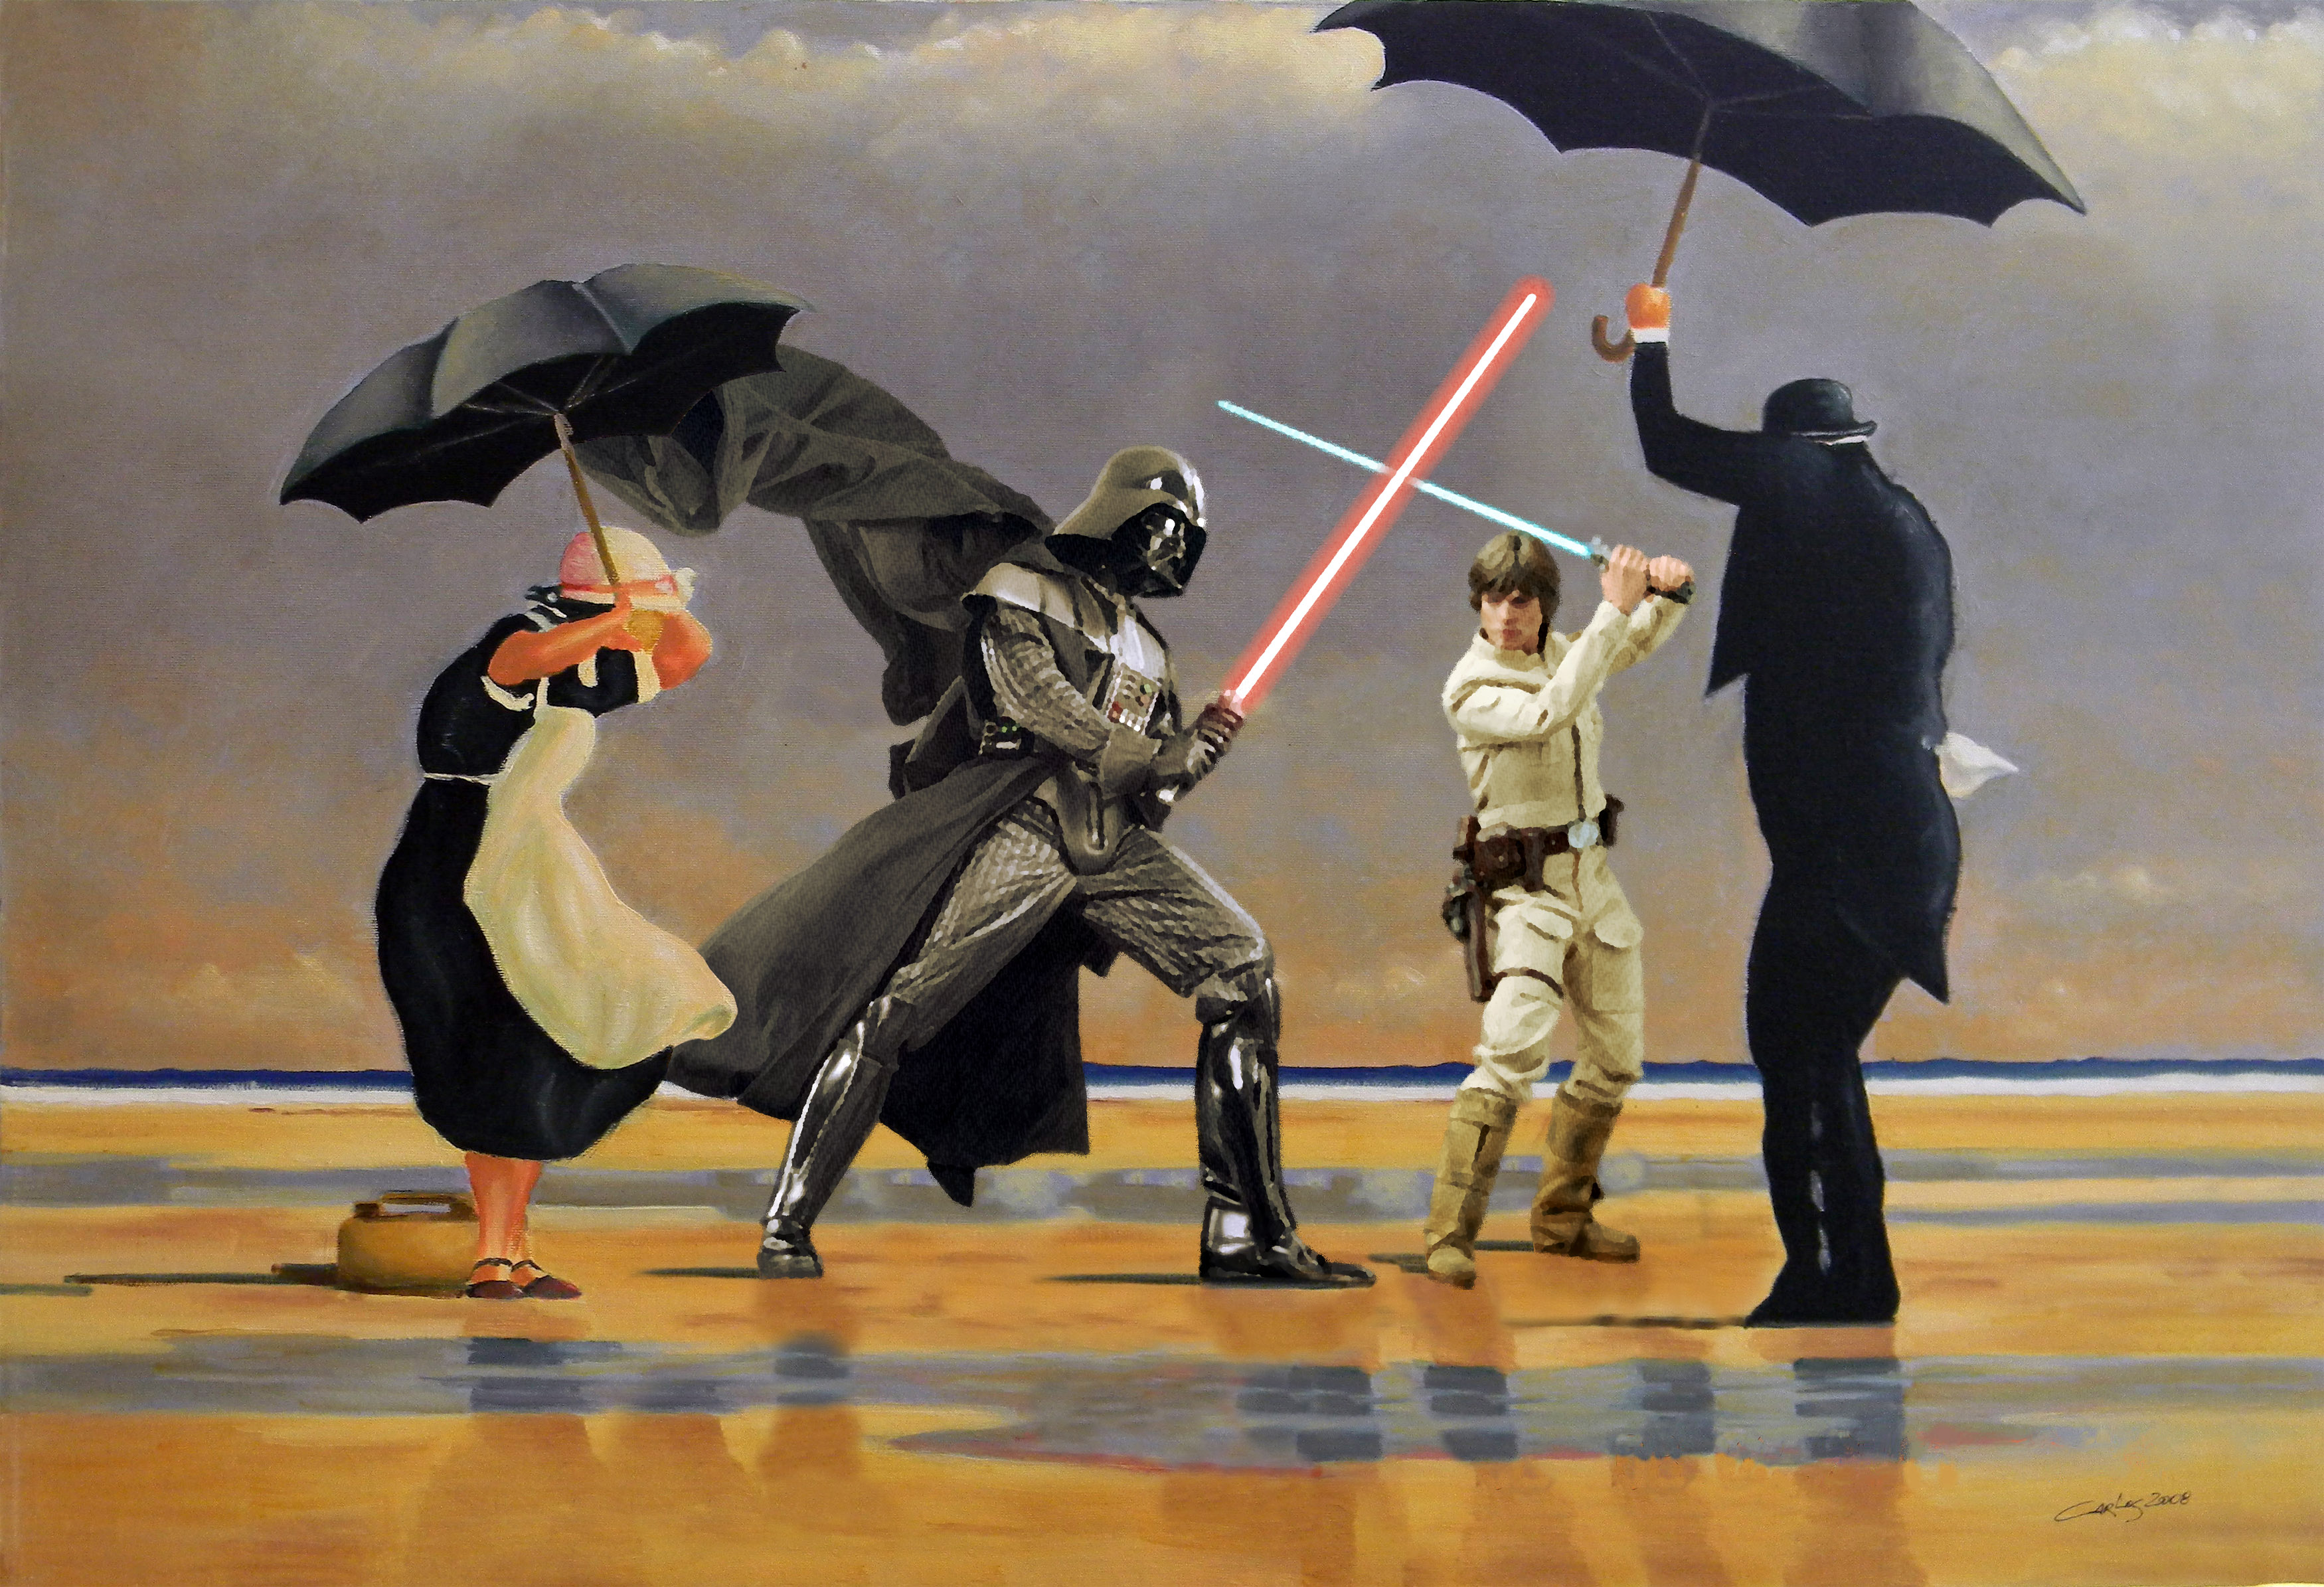 PIC BY DAVE HAMILTON/ CATERS NEWS - (PICTURED: Jack Vettriano, The Singing Butler with Darth Vader and Luke Skywalker) - An artist has given classic paintings NEW HOPE - by adding STAR WARS elements into the famous works. David Hamilton, 50, put his unique twist on paintings by the likes of Monet, Munch, Rembrandt and Van Gogh. The creative artist, from Livingston, Scotland, came up with the idea while flicking through a book of classic paintings. As a Star Wars fanatic he thought to himself how funny it would be funny to see a Stormtrooper incorporated into one of the works. SEE CATERS COPY.